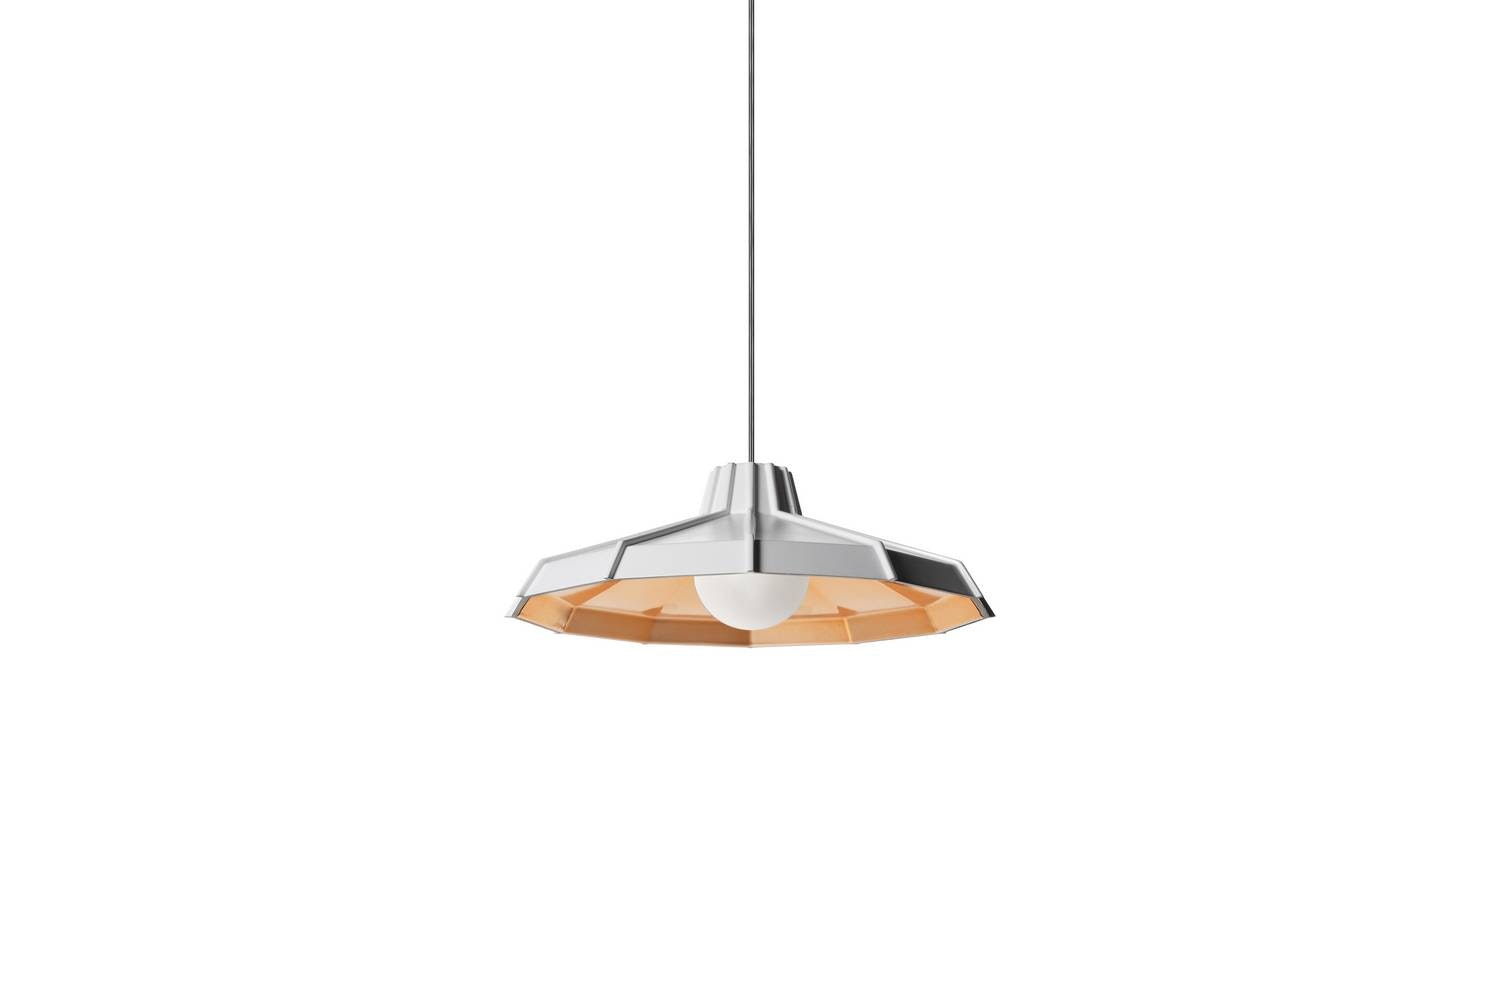 Mysterio Suspension Lamp by Successful Living from DIESEL for Foscarini